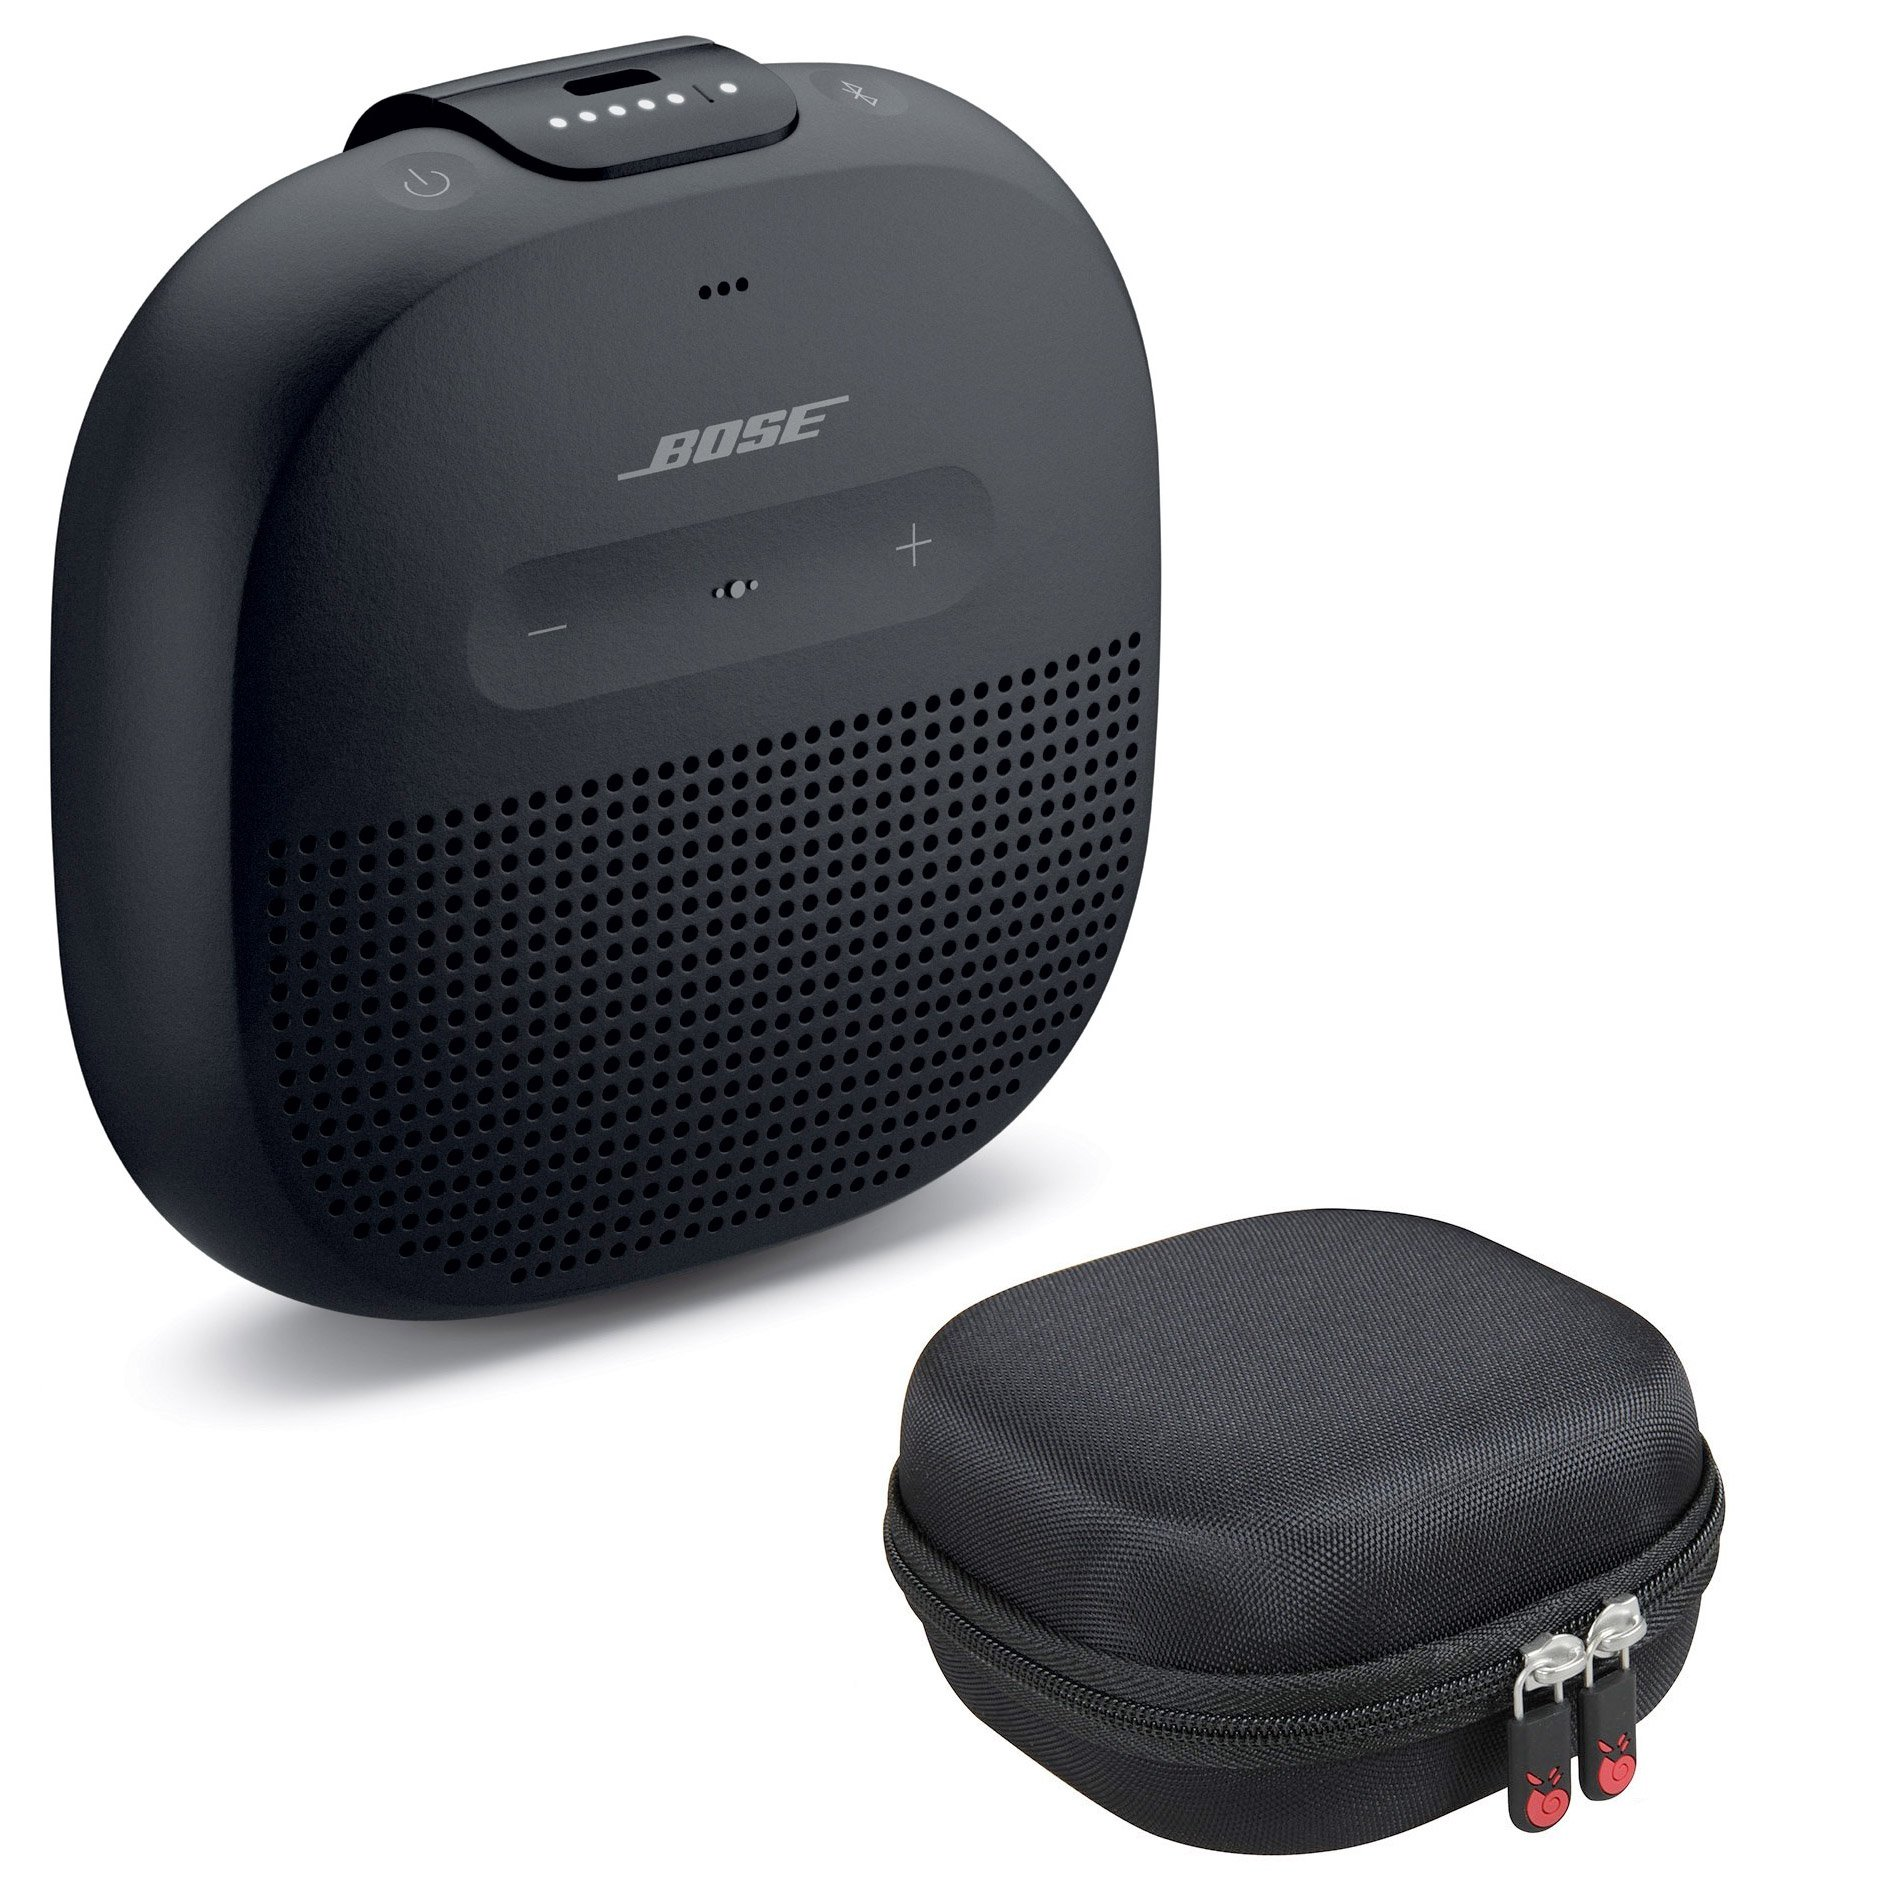 Bose SoundLink Micro Bluetooth Speaker, Black, with Protective Hardshell Travel Case by Bose